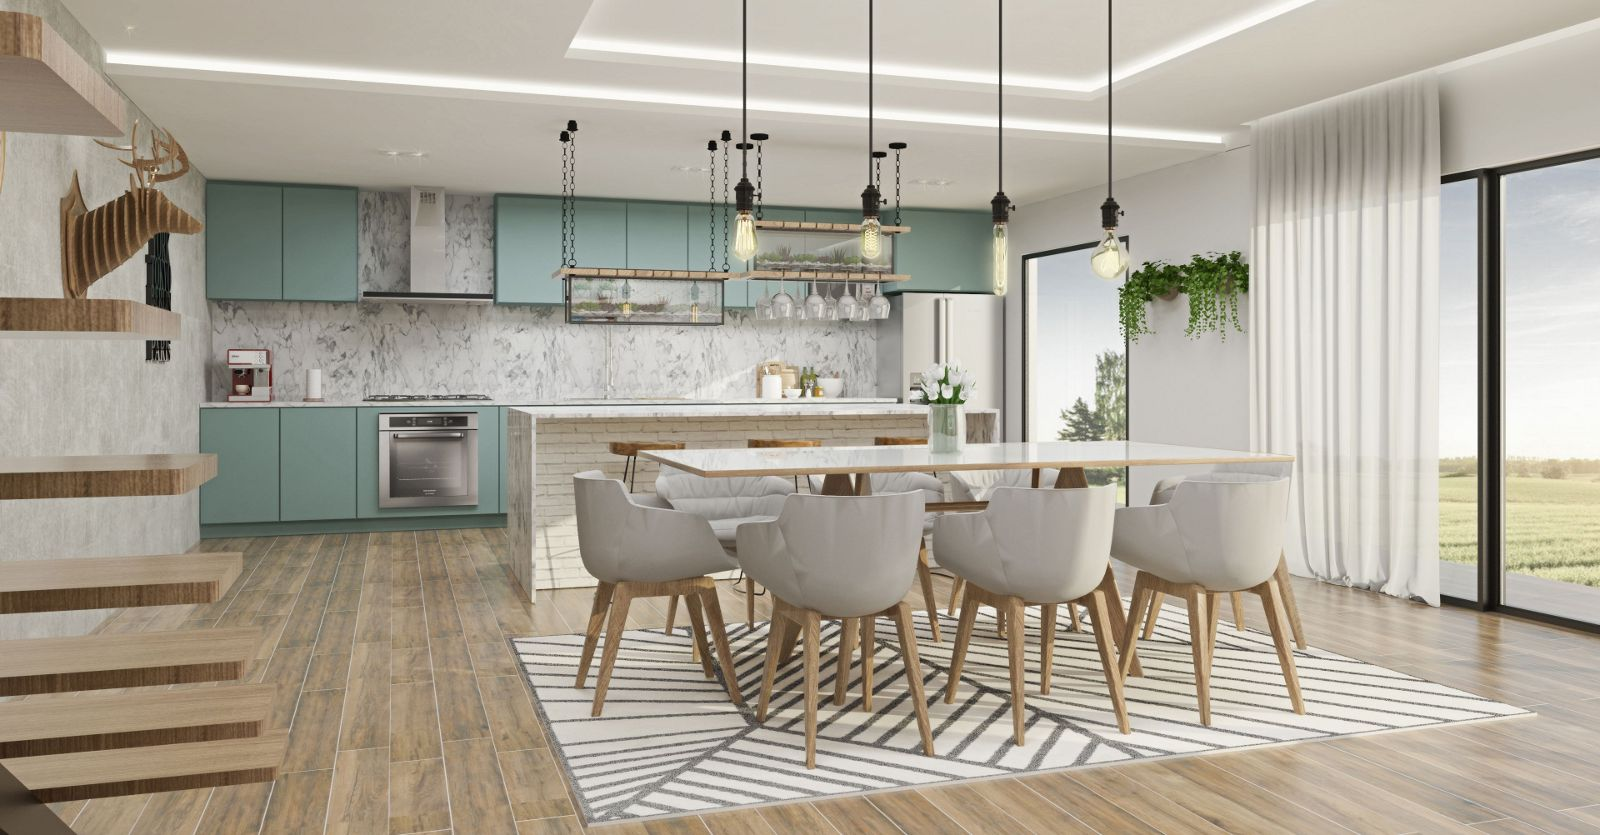 accessibility - how to modernize your home - aging in place kitchen